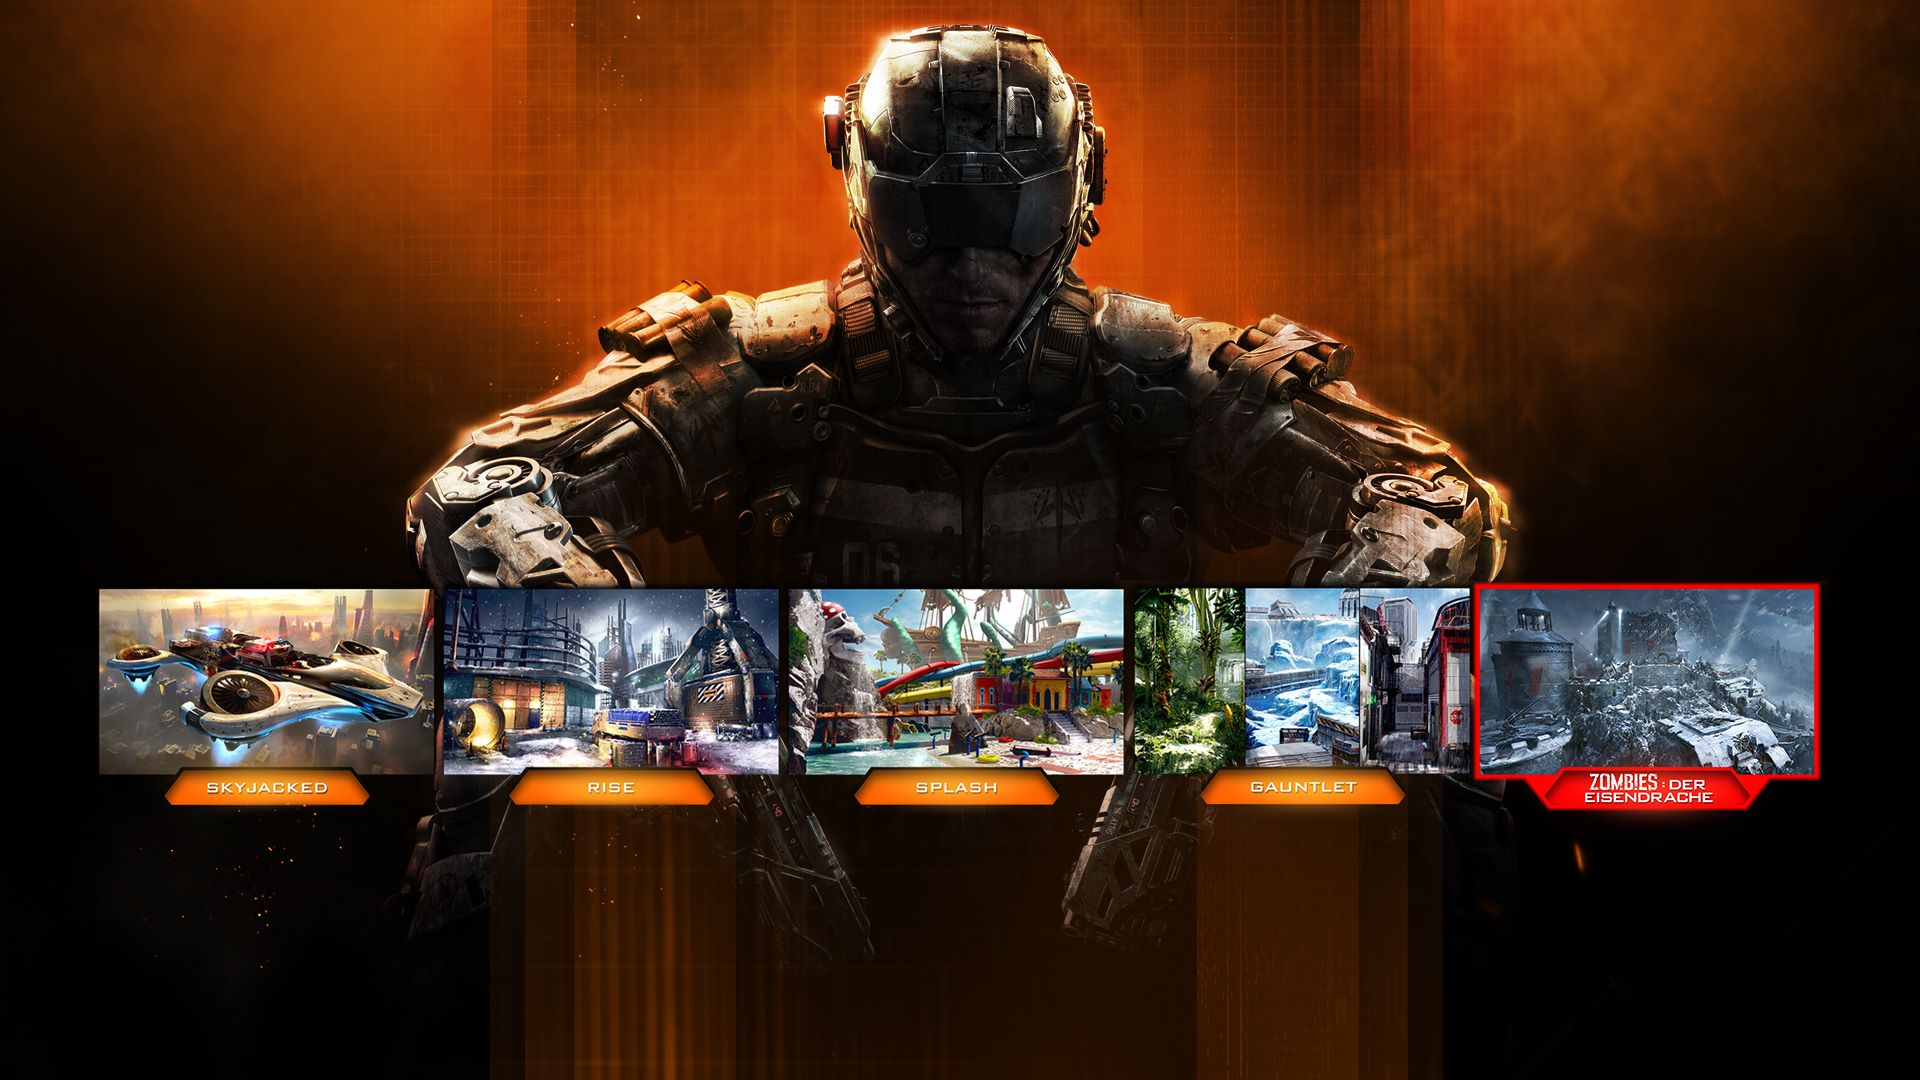 call of duty black ops 3 download size